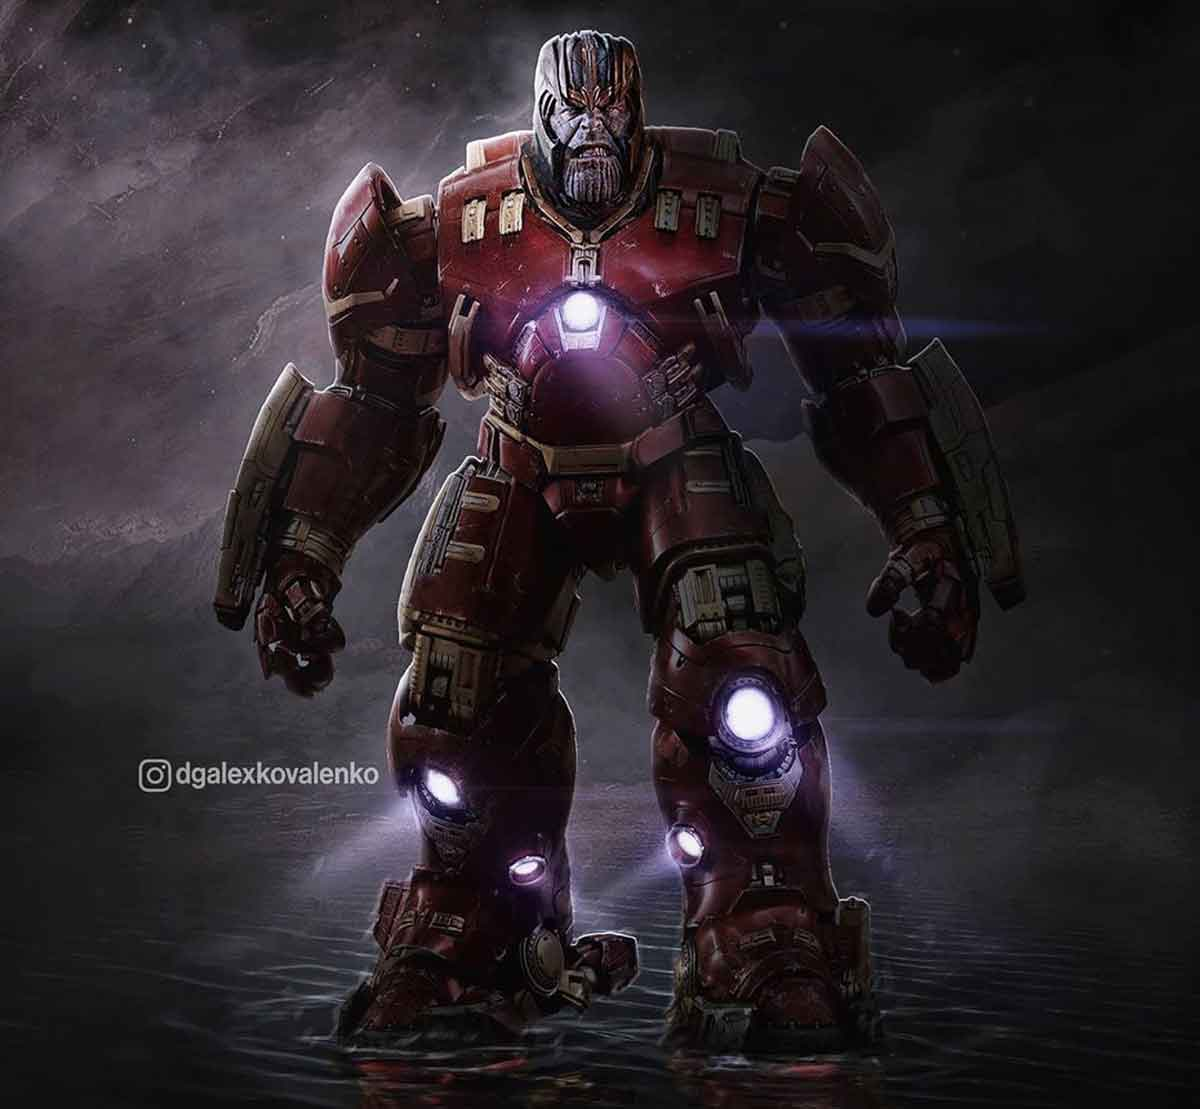 Fan Art de Thanos con la armadura Hulkbuster de Iron Man